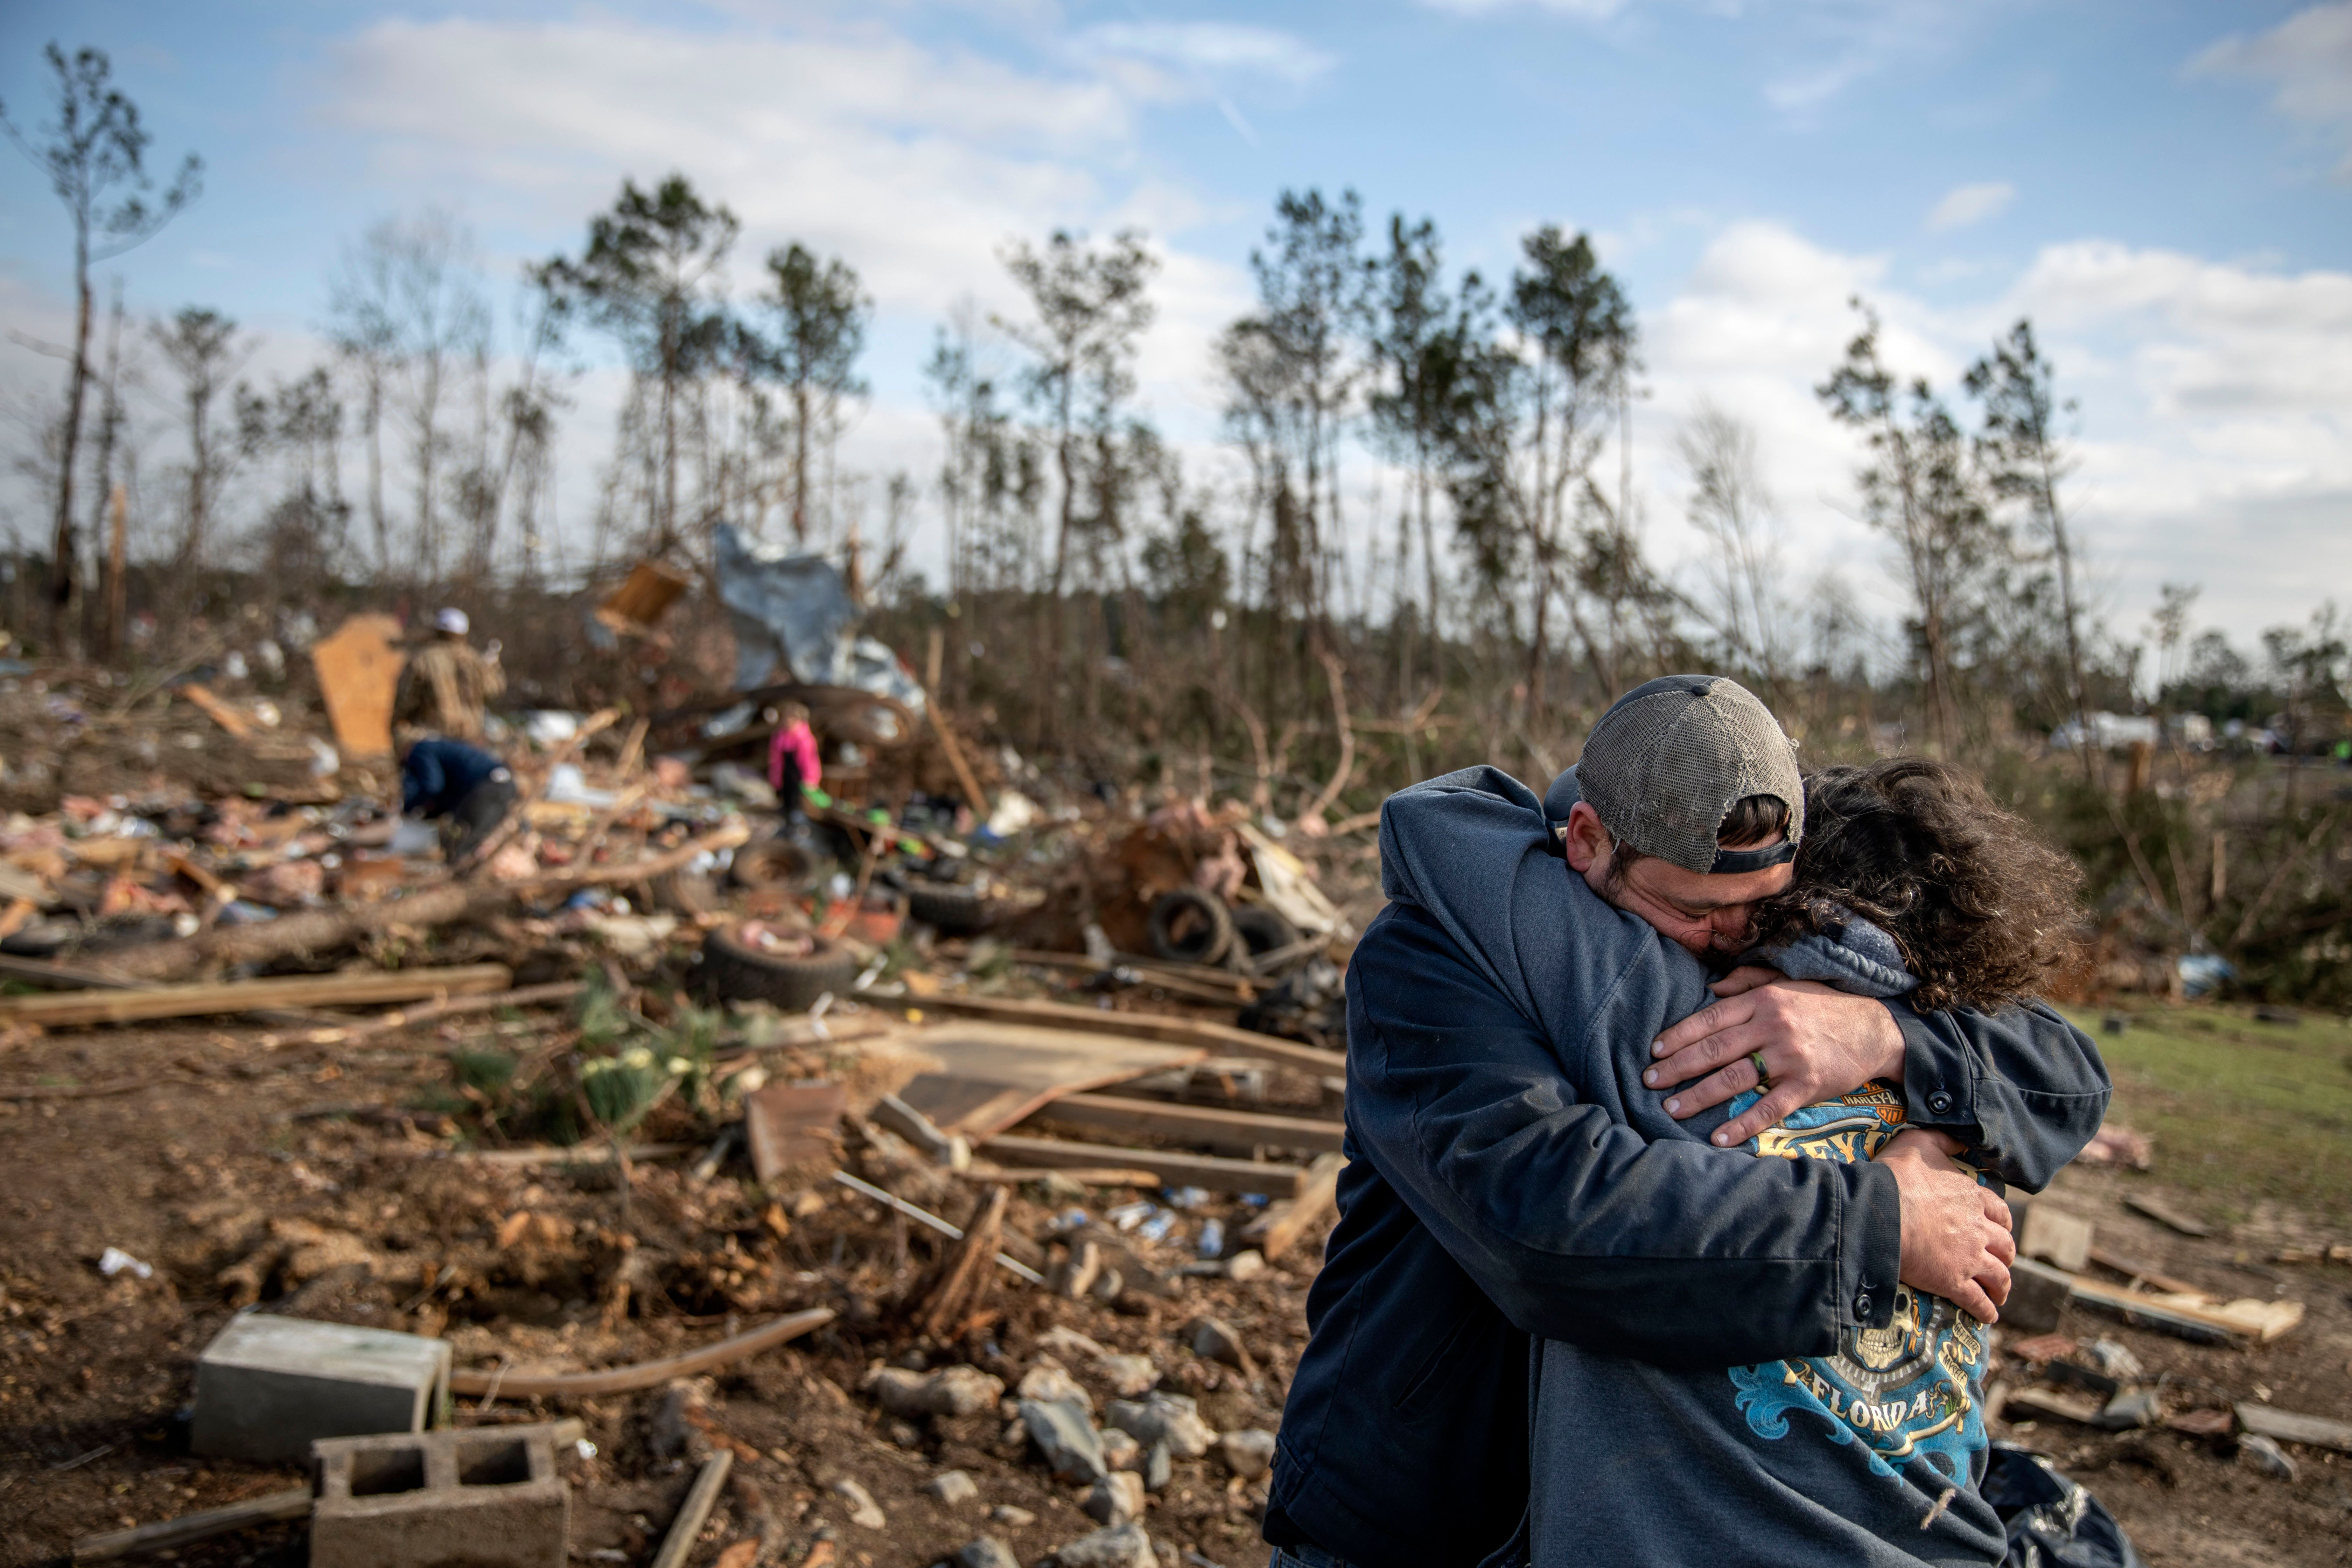 "ADDED SHARED WITH-Carol Dean, right, is embraced by David Theo Dean as they sift through the debris of the home Carol shared with her husband and David's father, David Wayne Dean, who died when a tornado destroyed the house in Beauregard, Ala., Monday, March 4, 2019. ""He was my wedding gift,"" said Dean of her husband whom she married three years ago. ""He was one in a million. He'd send me flowers to work just to let me know he loved me. He'd send me some of the biggest strawberries in the world. I'm not going to be the same."" (AP Photo/David Goldman)"